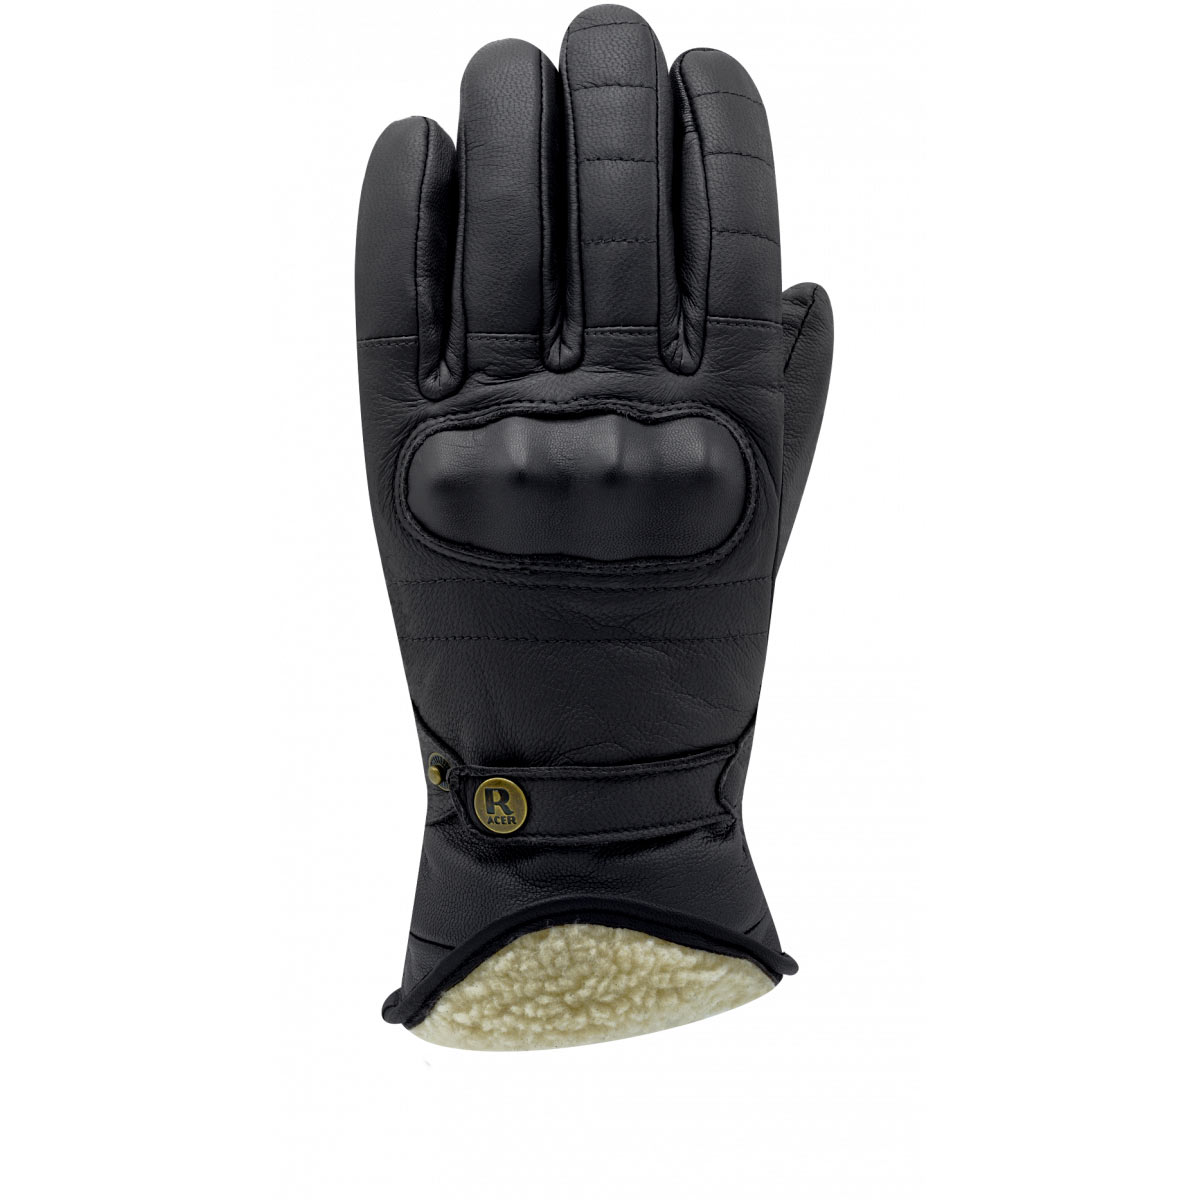 Racer Flynn 3 Gloves - Black